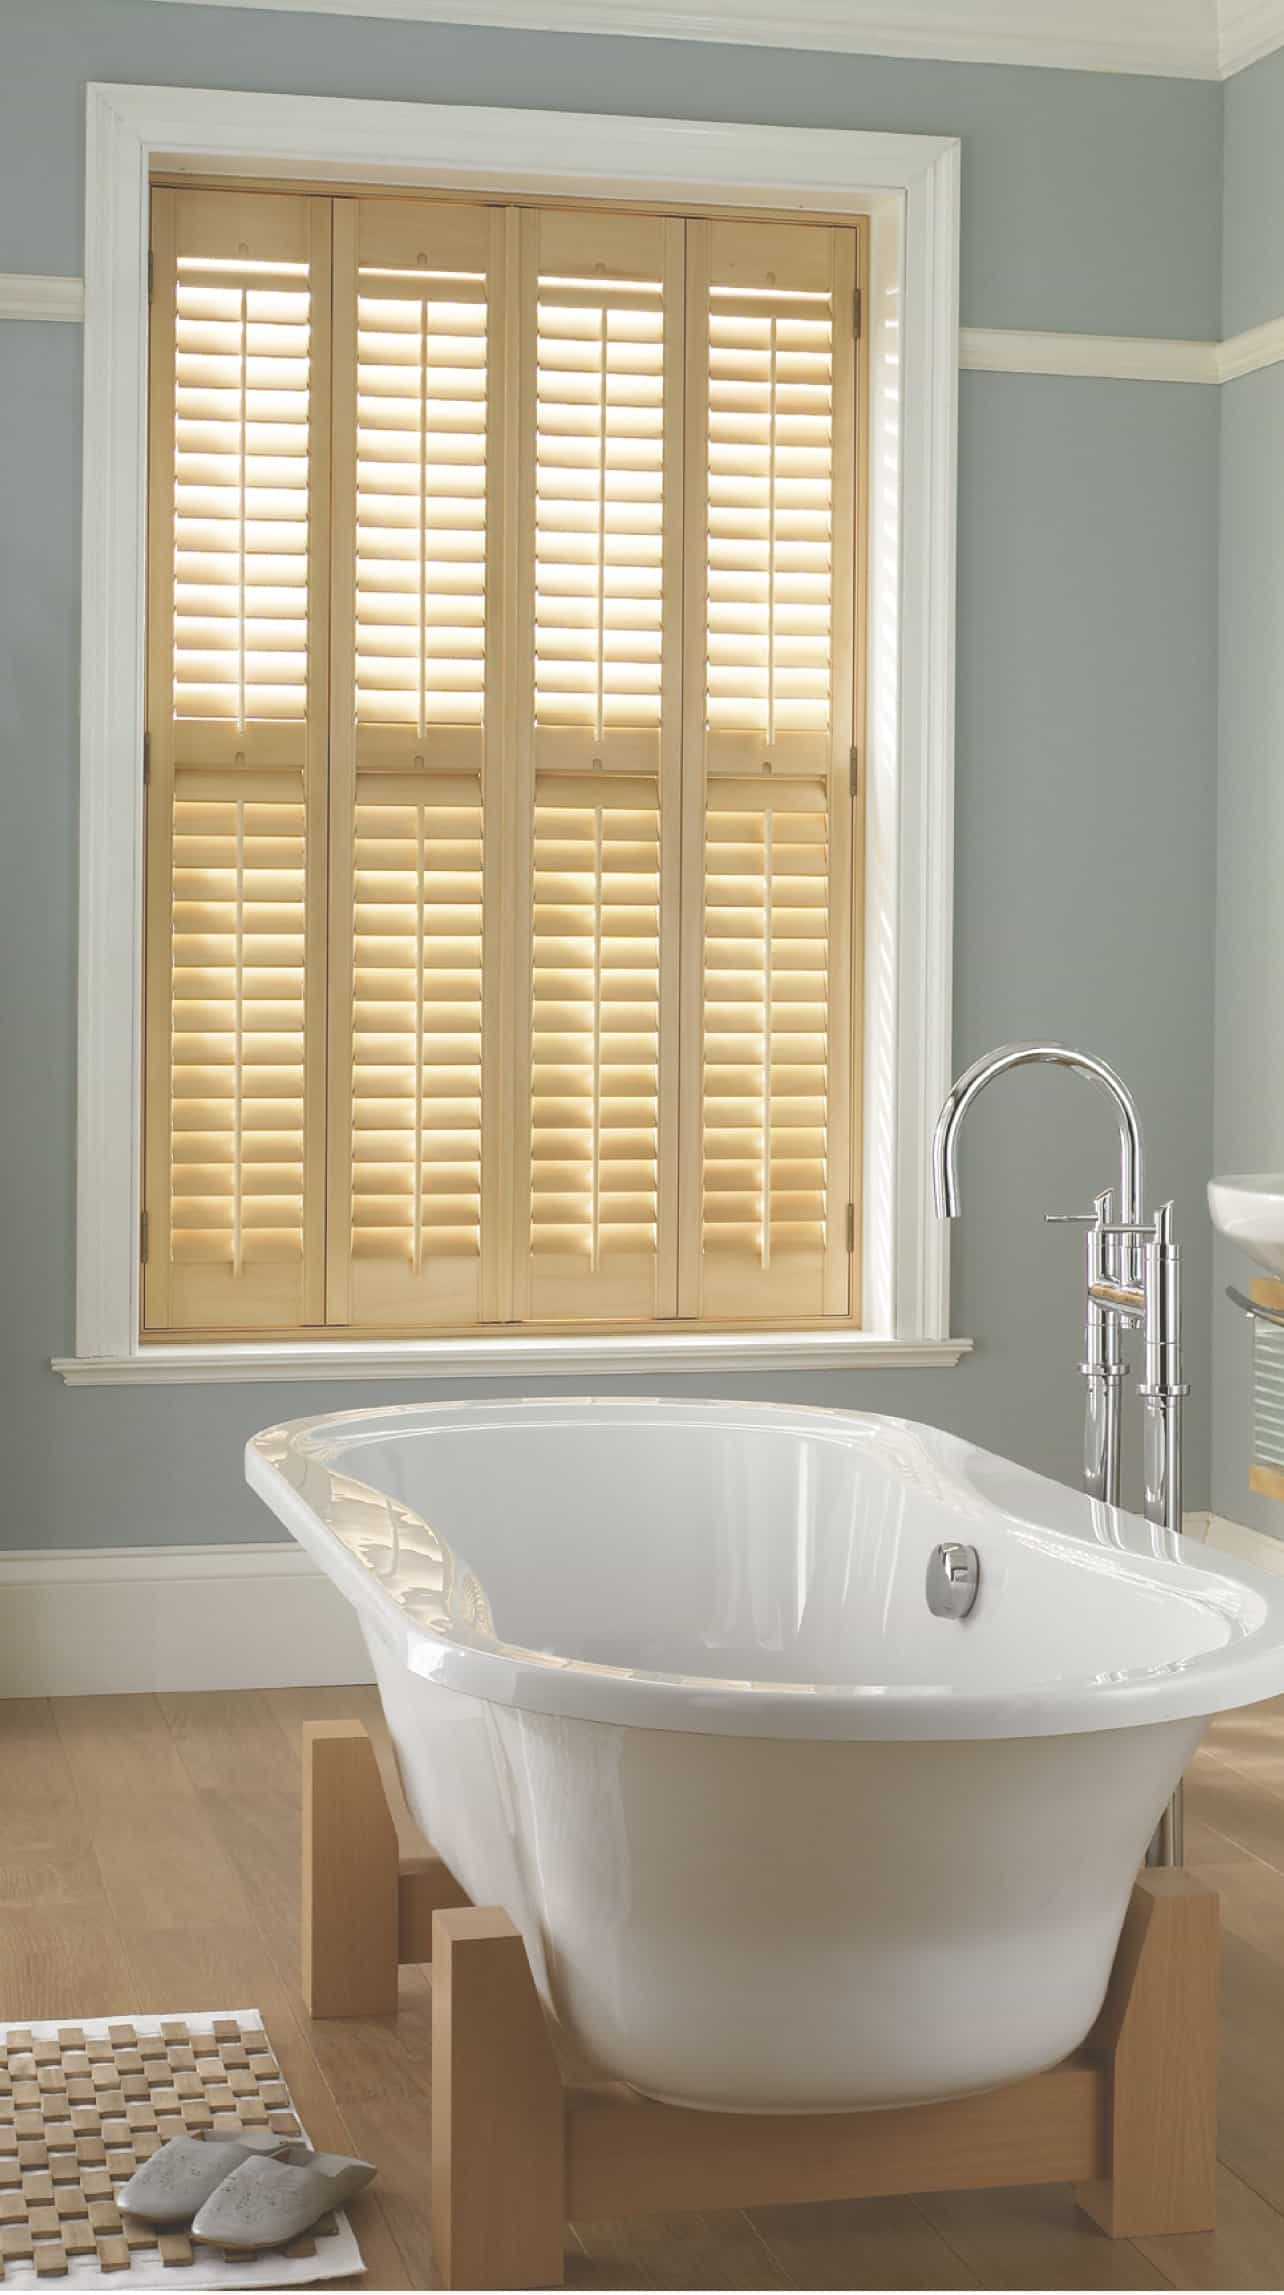 bathroom shutters and blinds Washington for safety and privacy